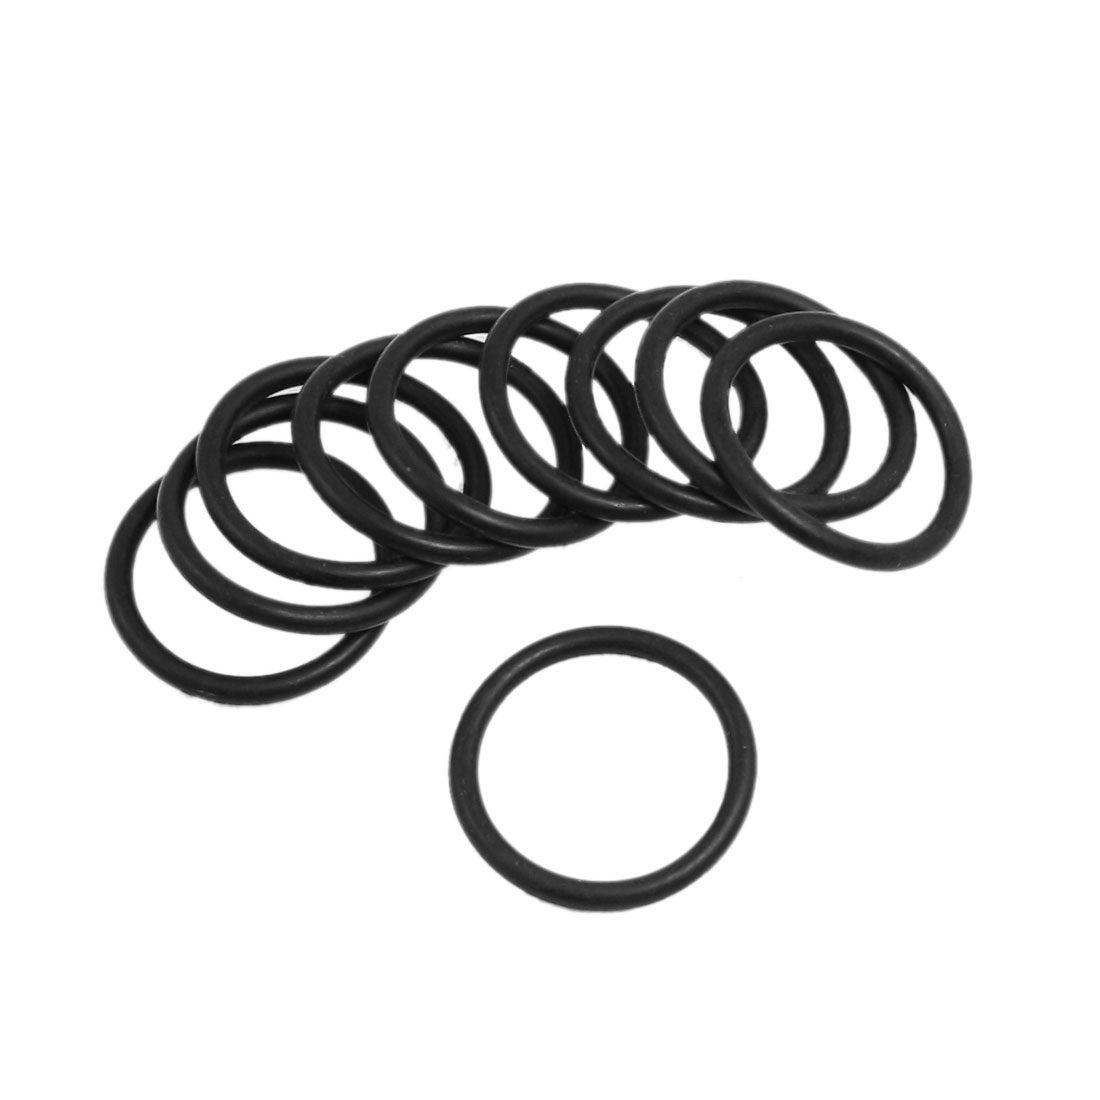 10 Pcs 36mm x 3.5mm Black Silicone O Rings Oil Seals Gaskets